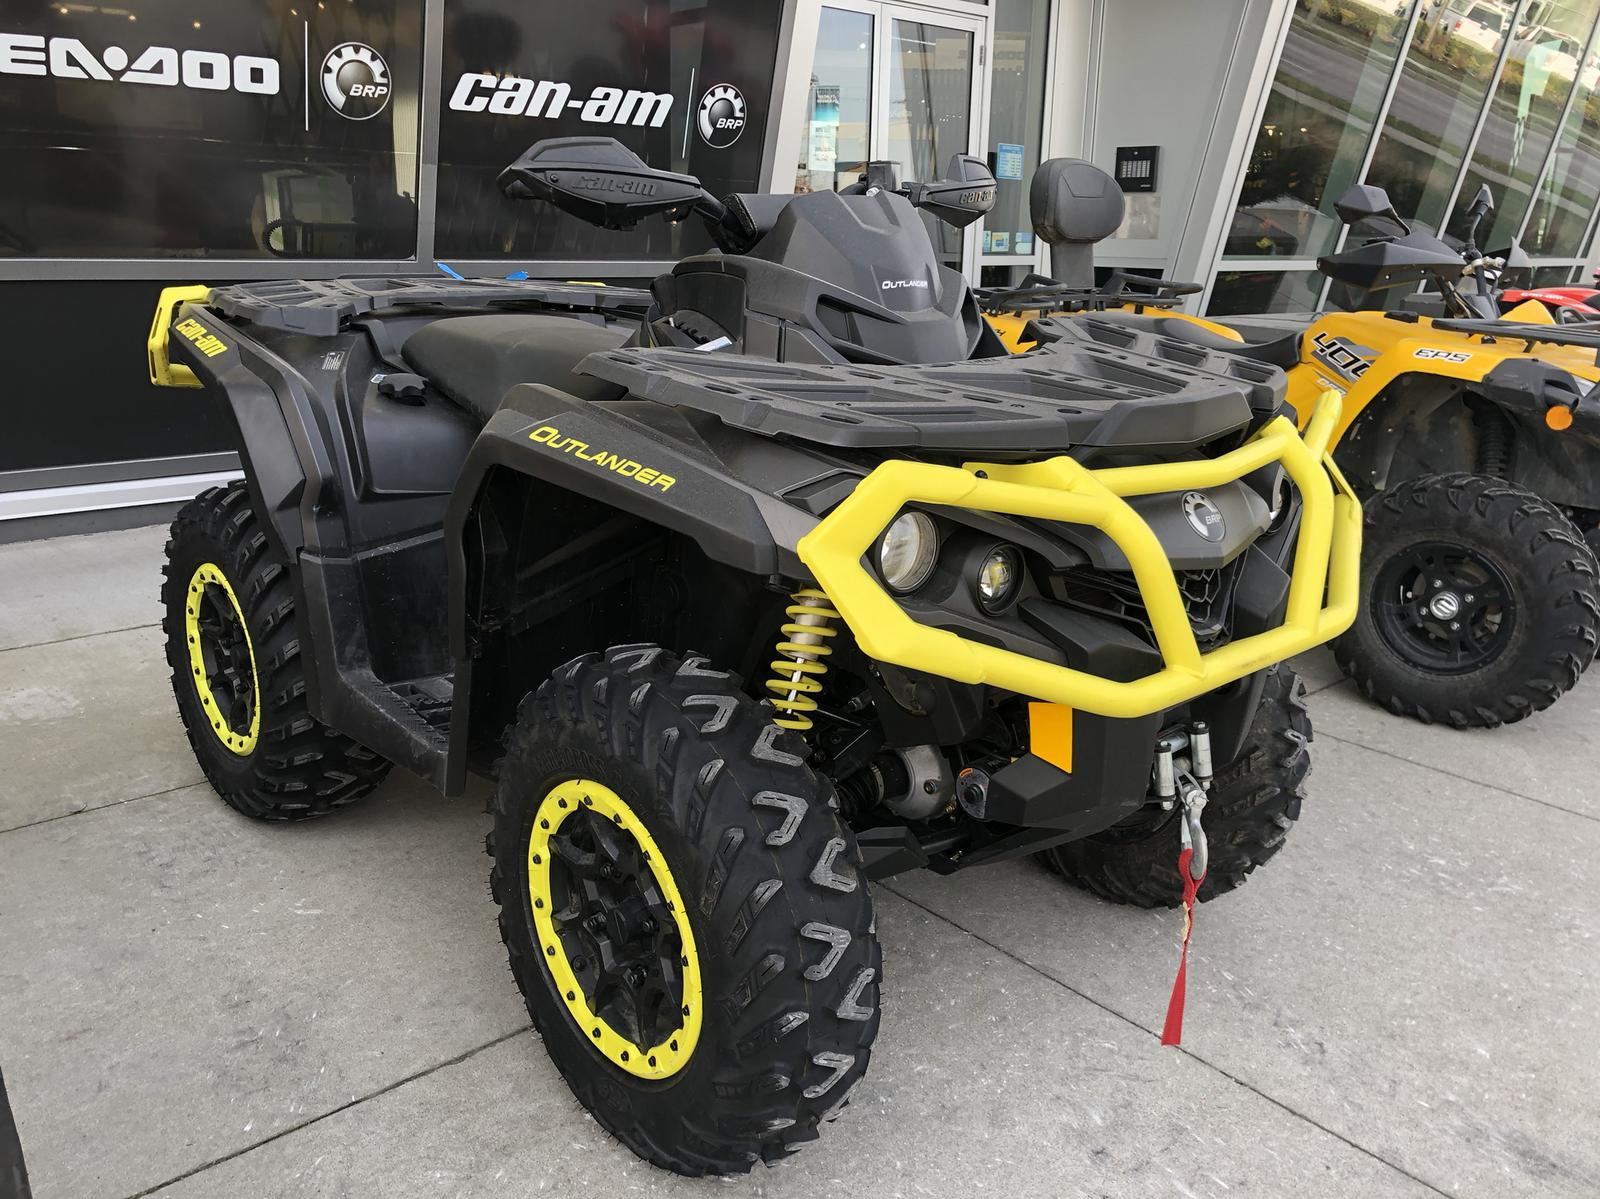 used can-am outlander on lot